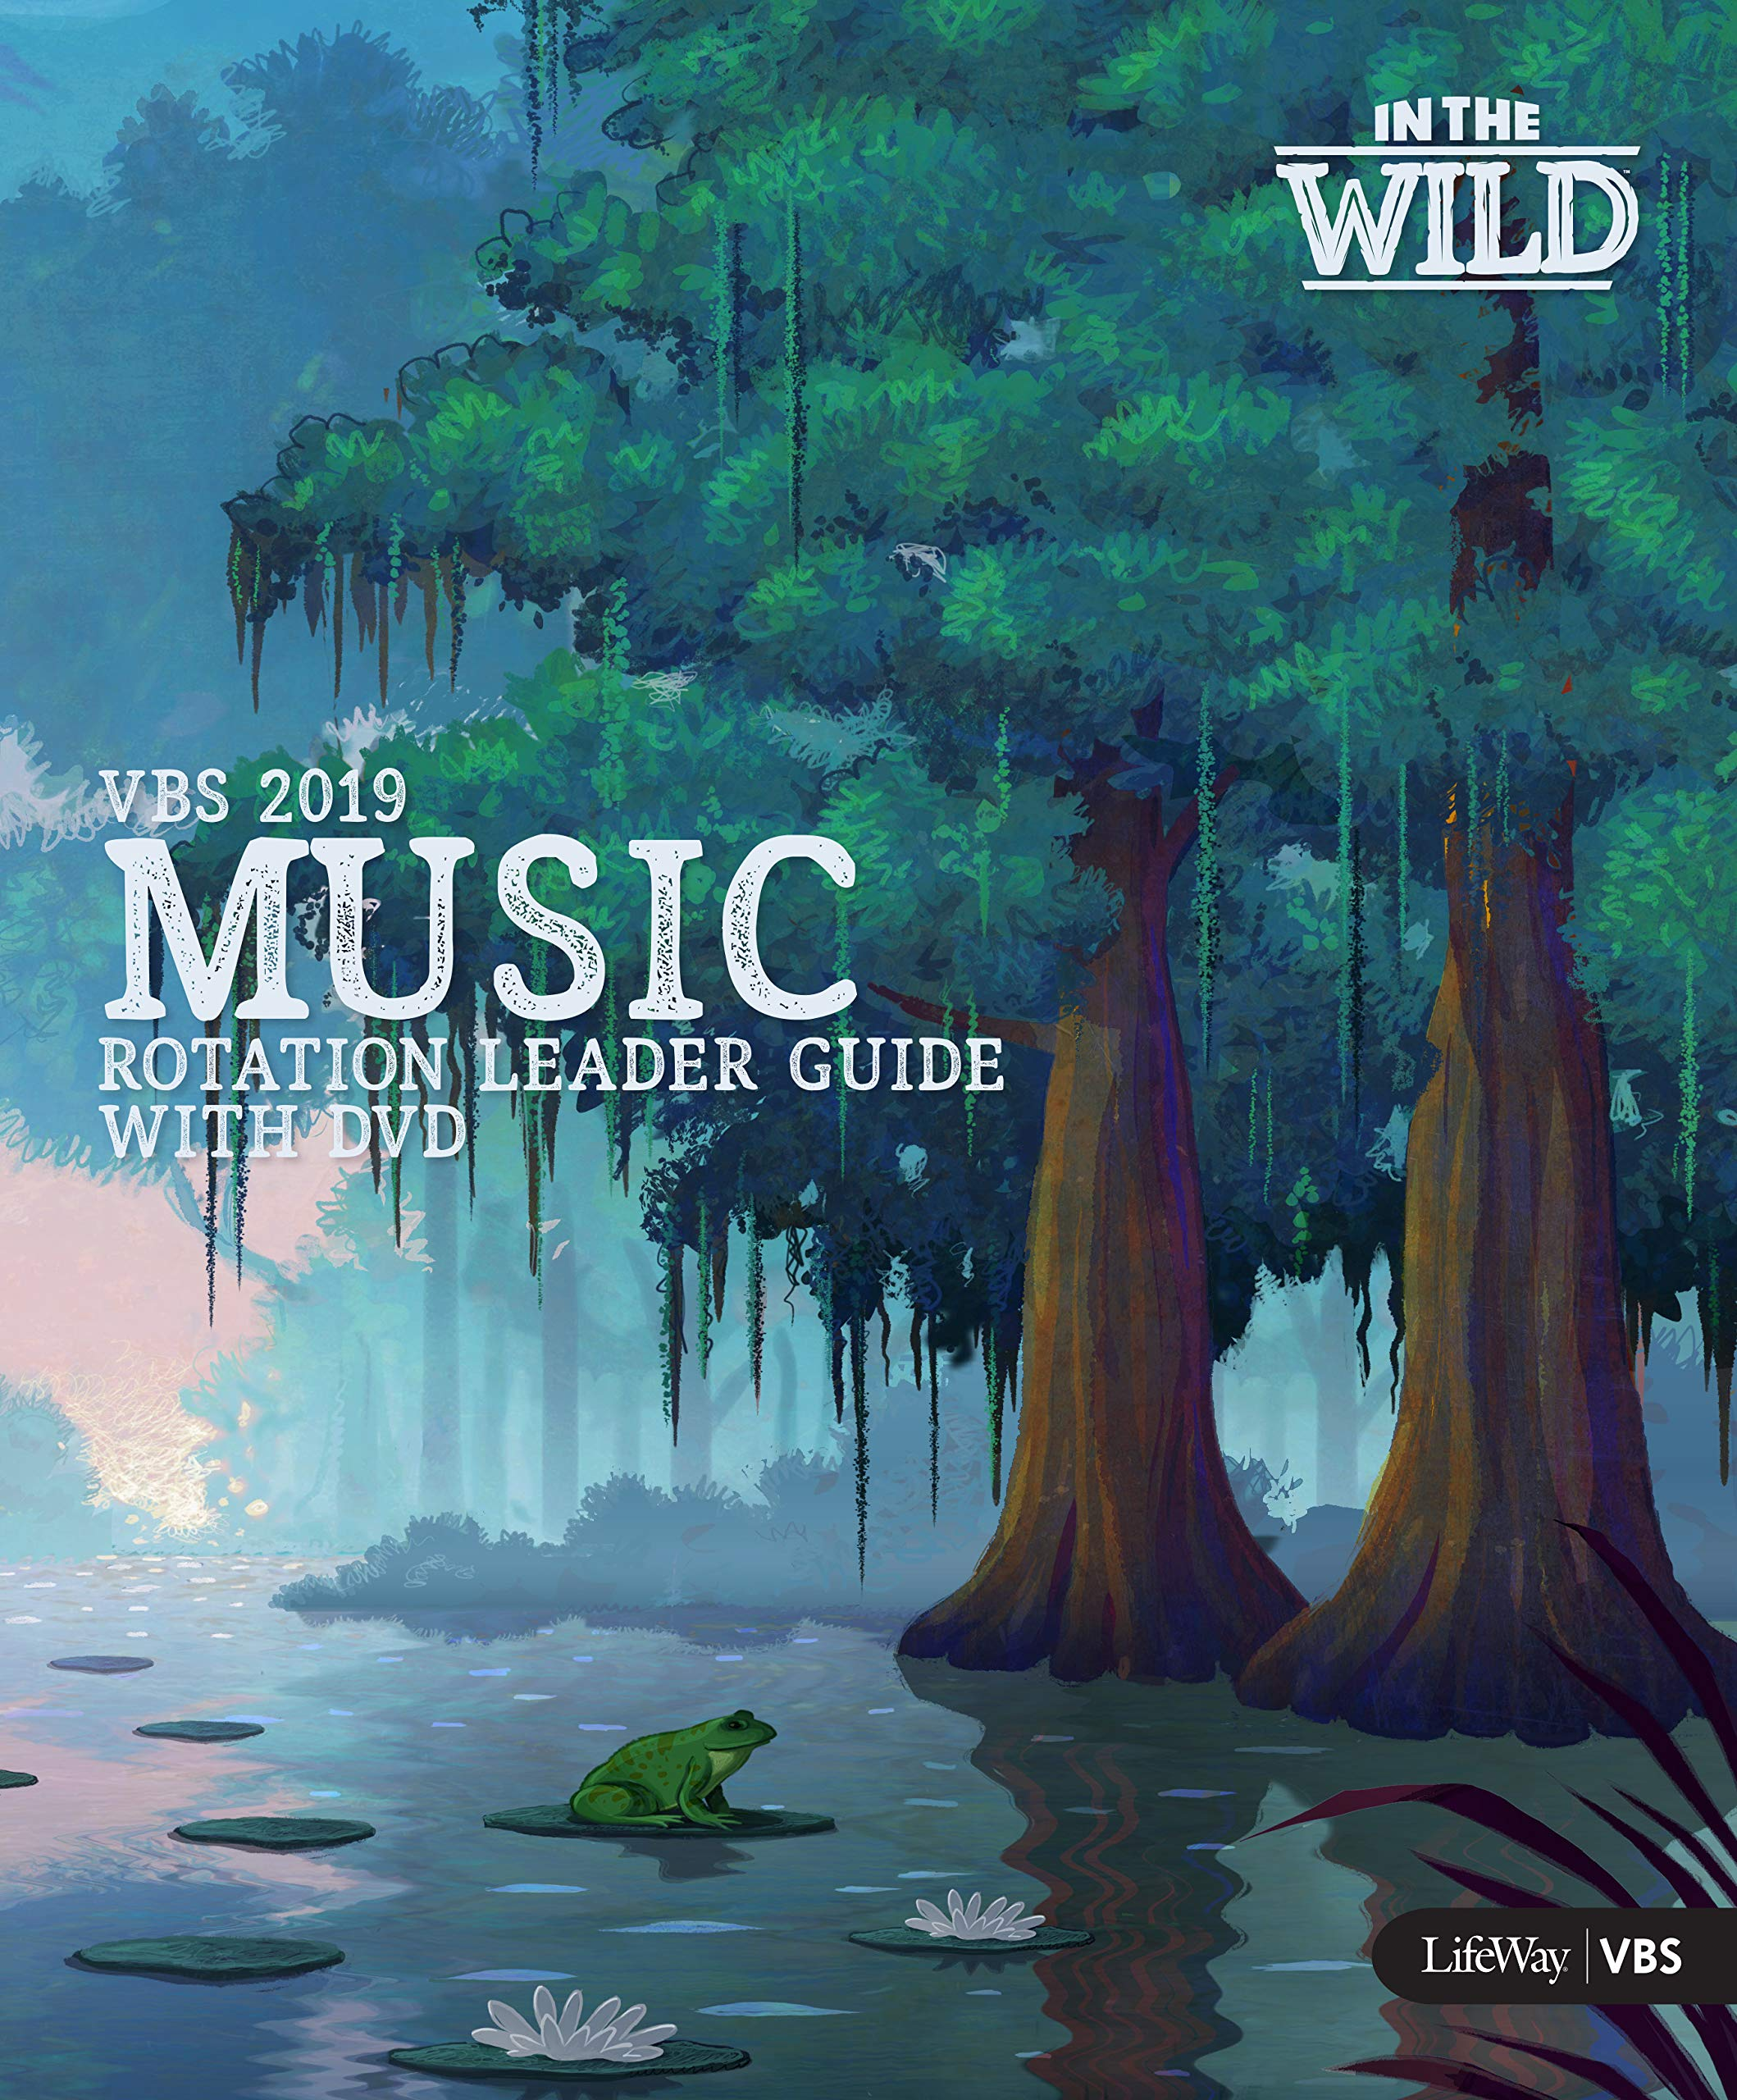 VBS 2019 Music Rotation Leader Guide With DVD: Lifeway VBS